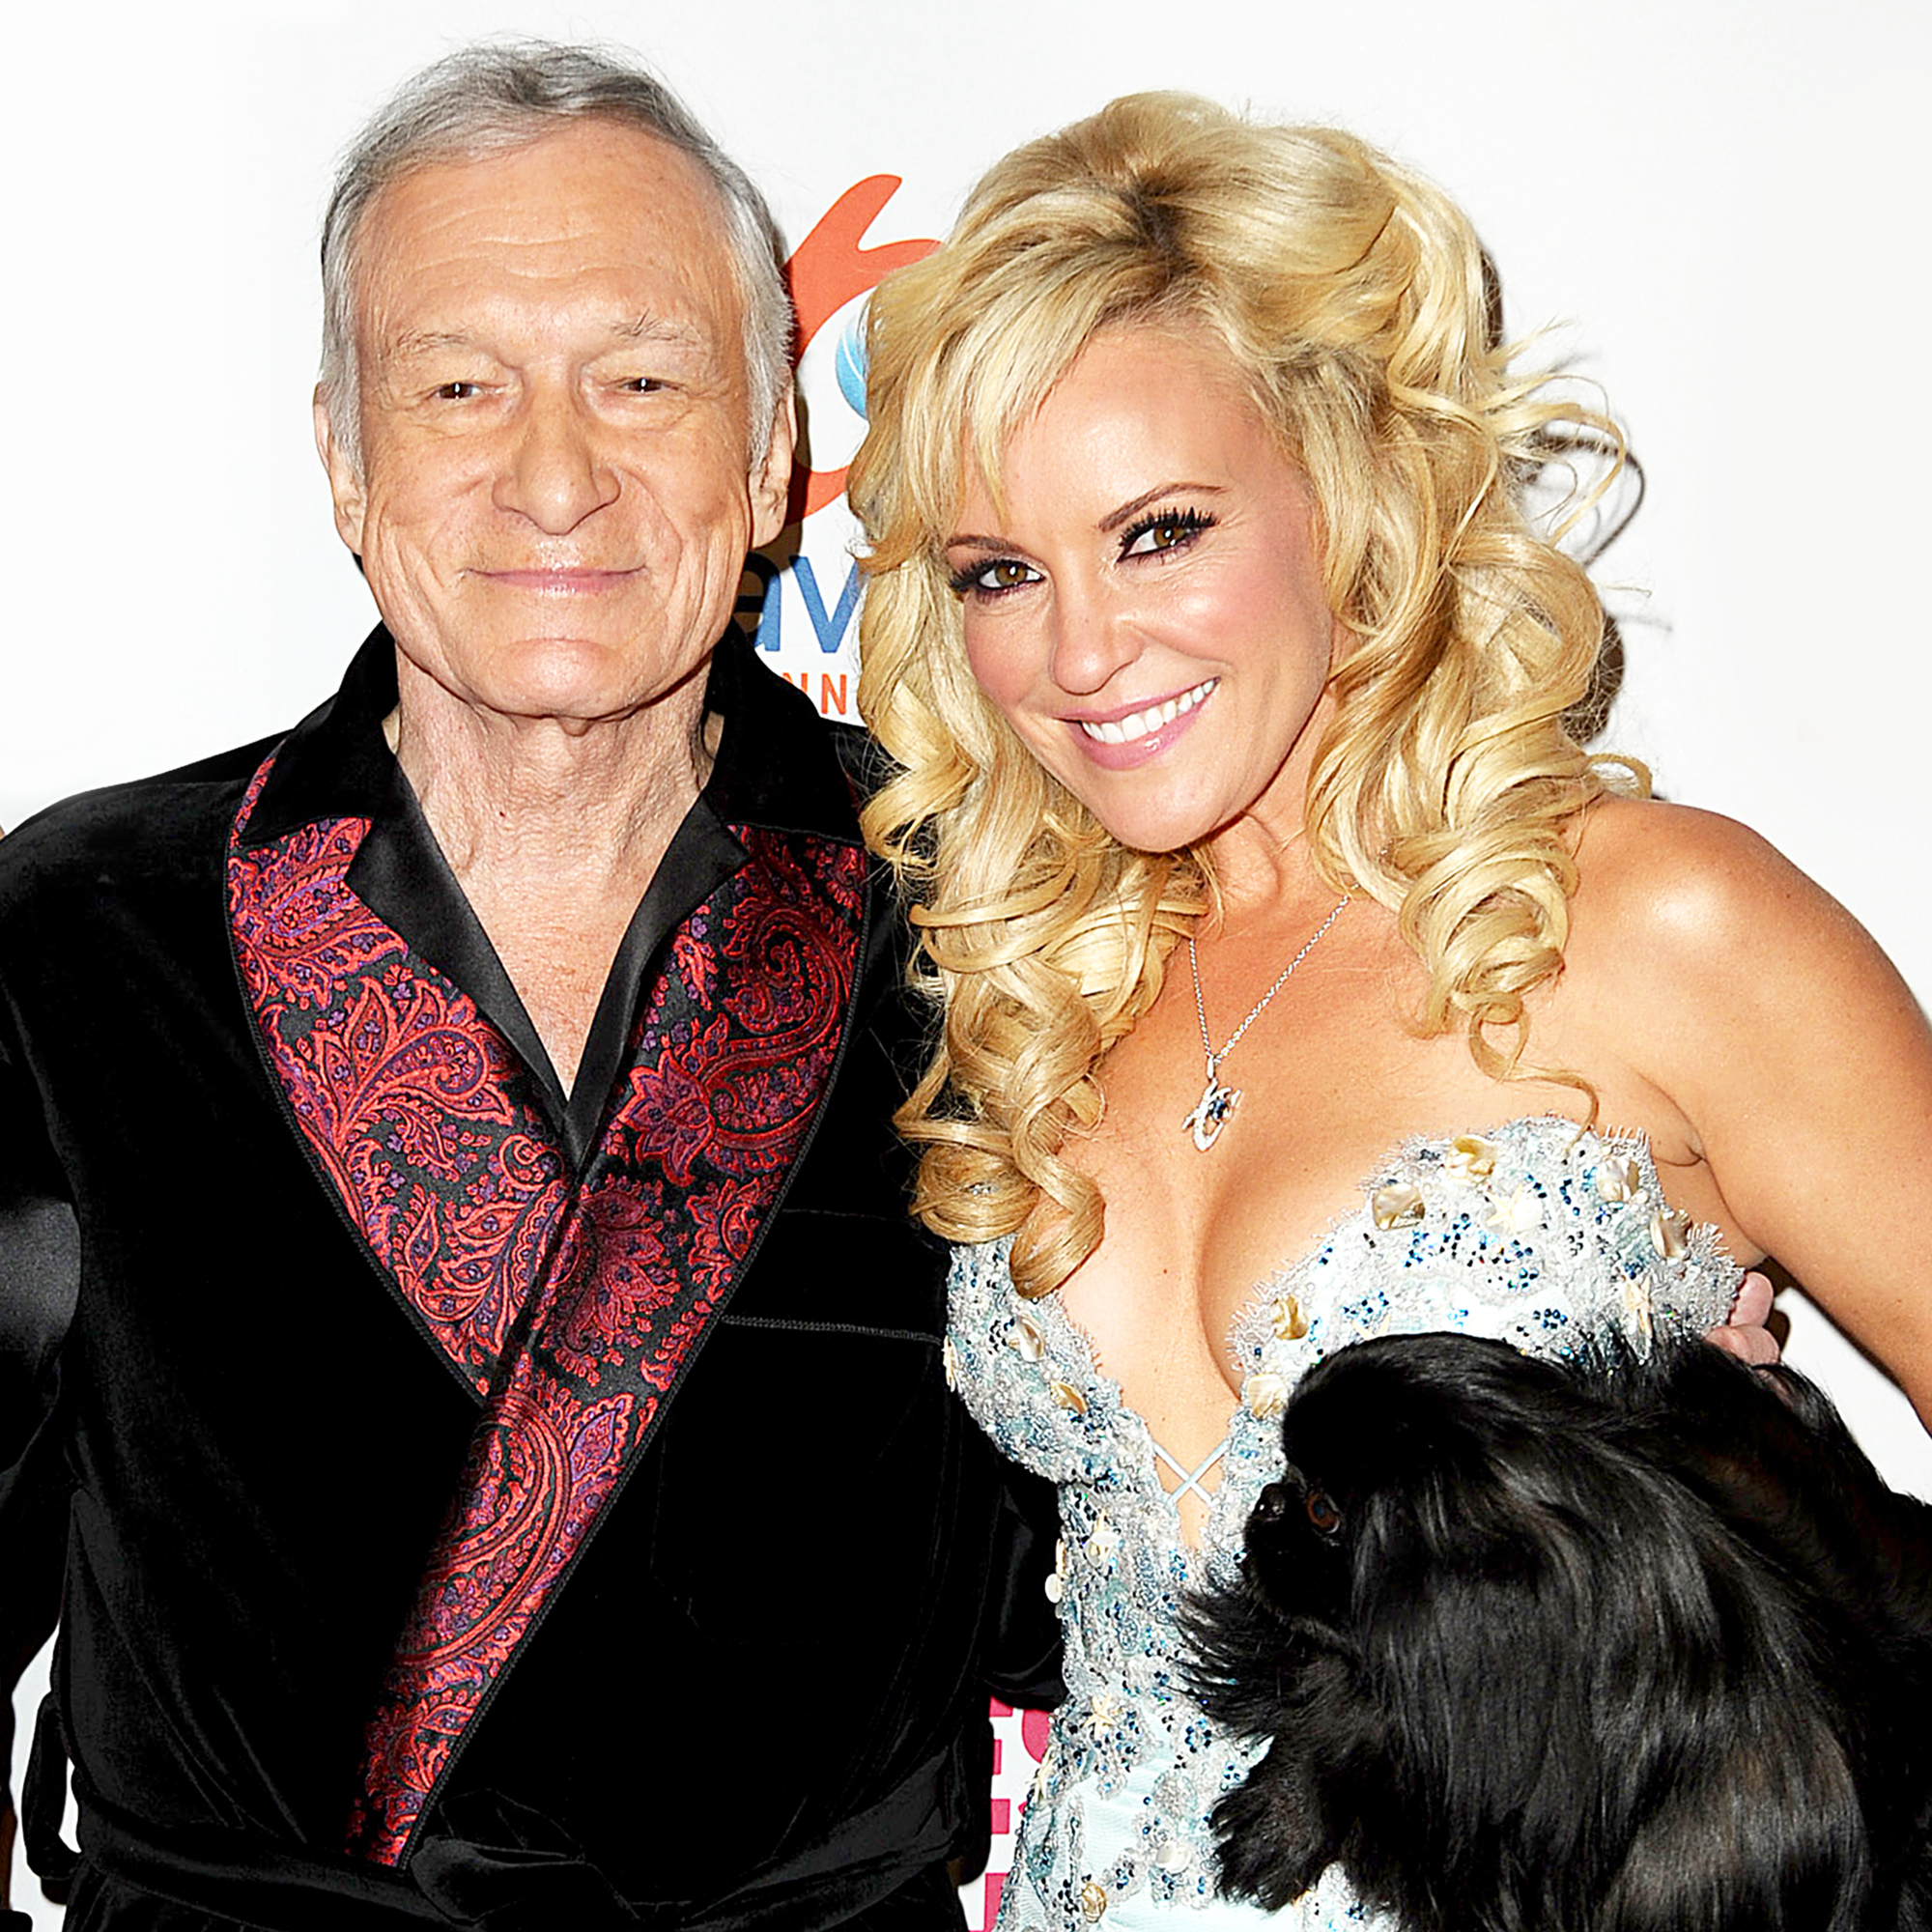 Hugh Hefner and Bridget Marquardt